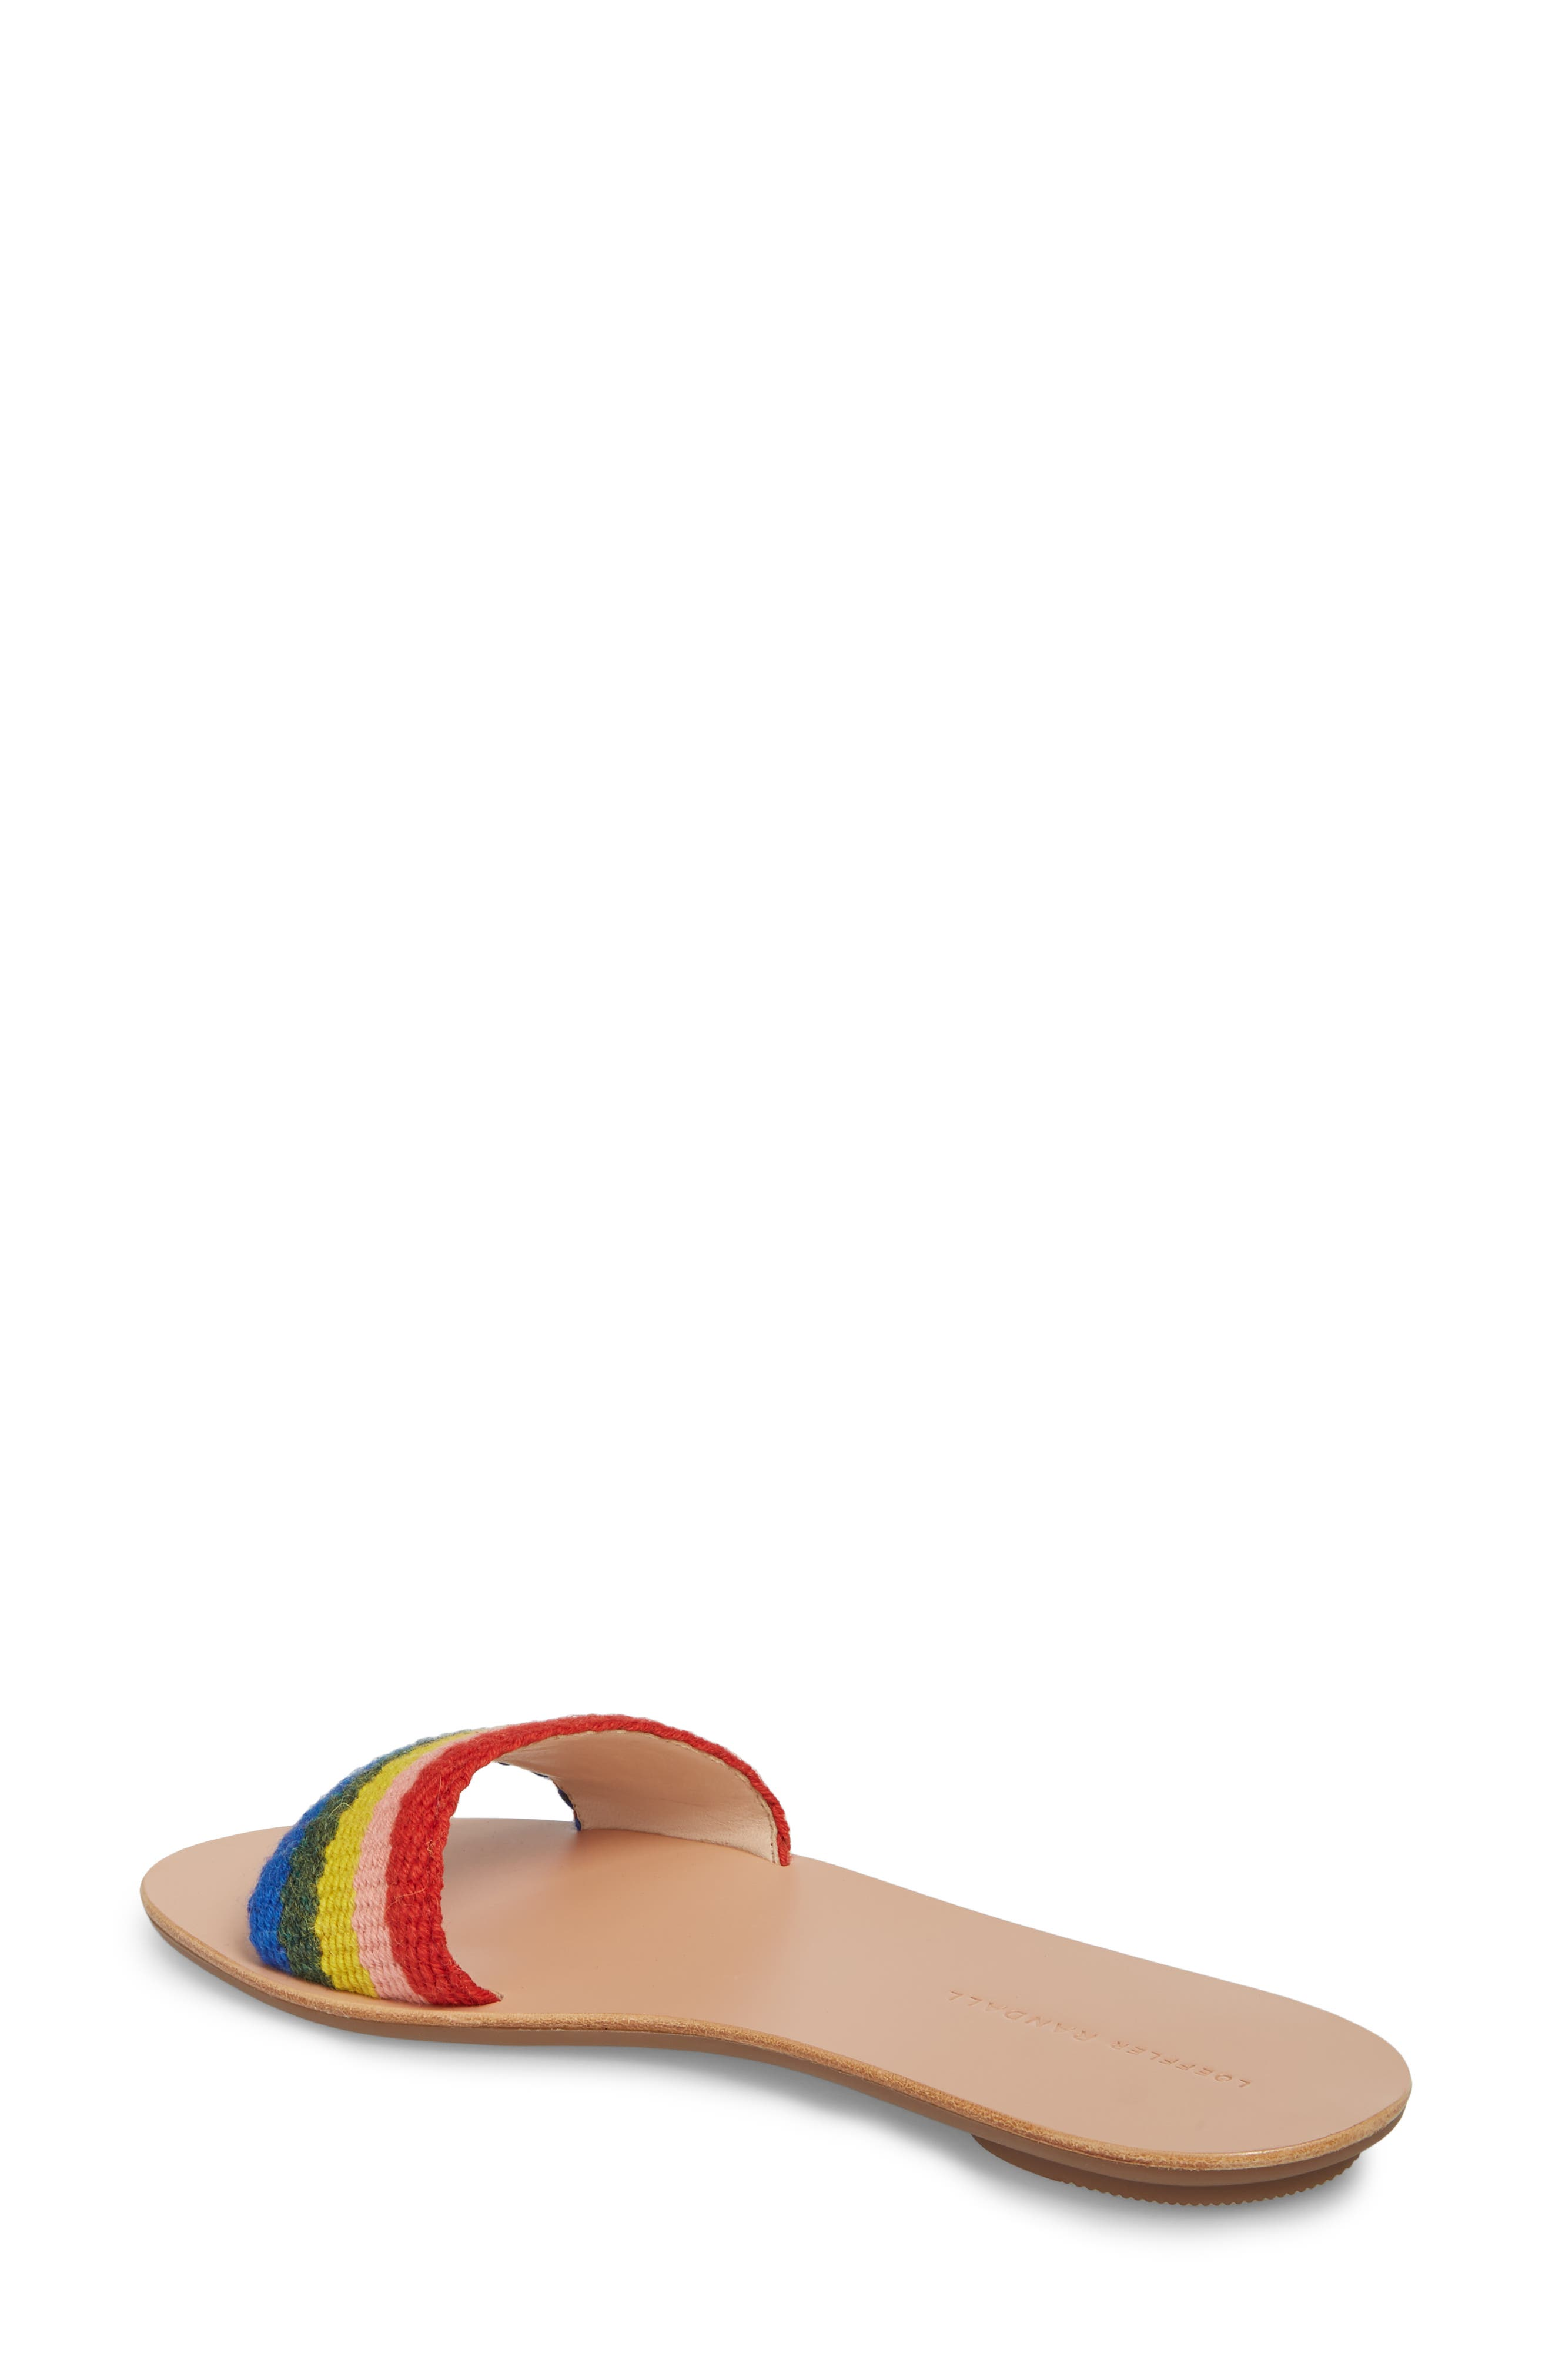 Stella Woven Slide Sandal,                             Alternate thumbnail 2, color,                             028